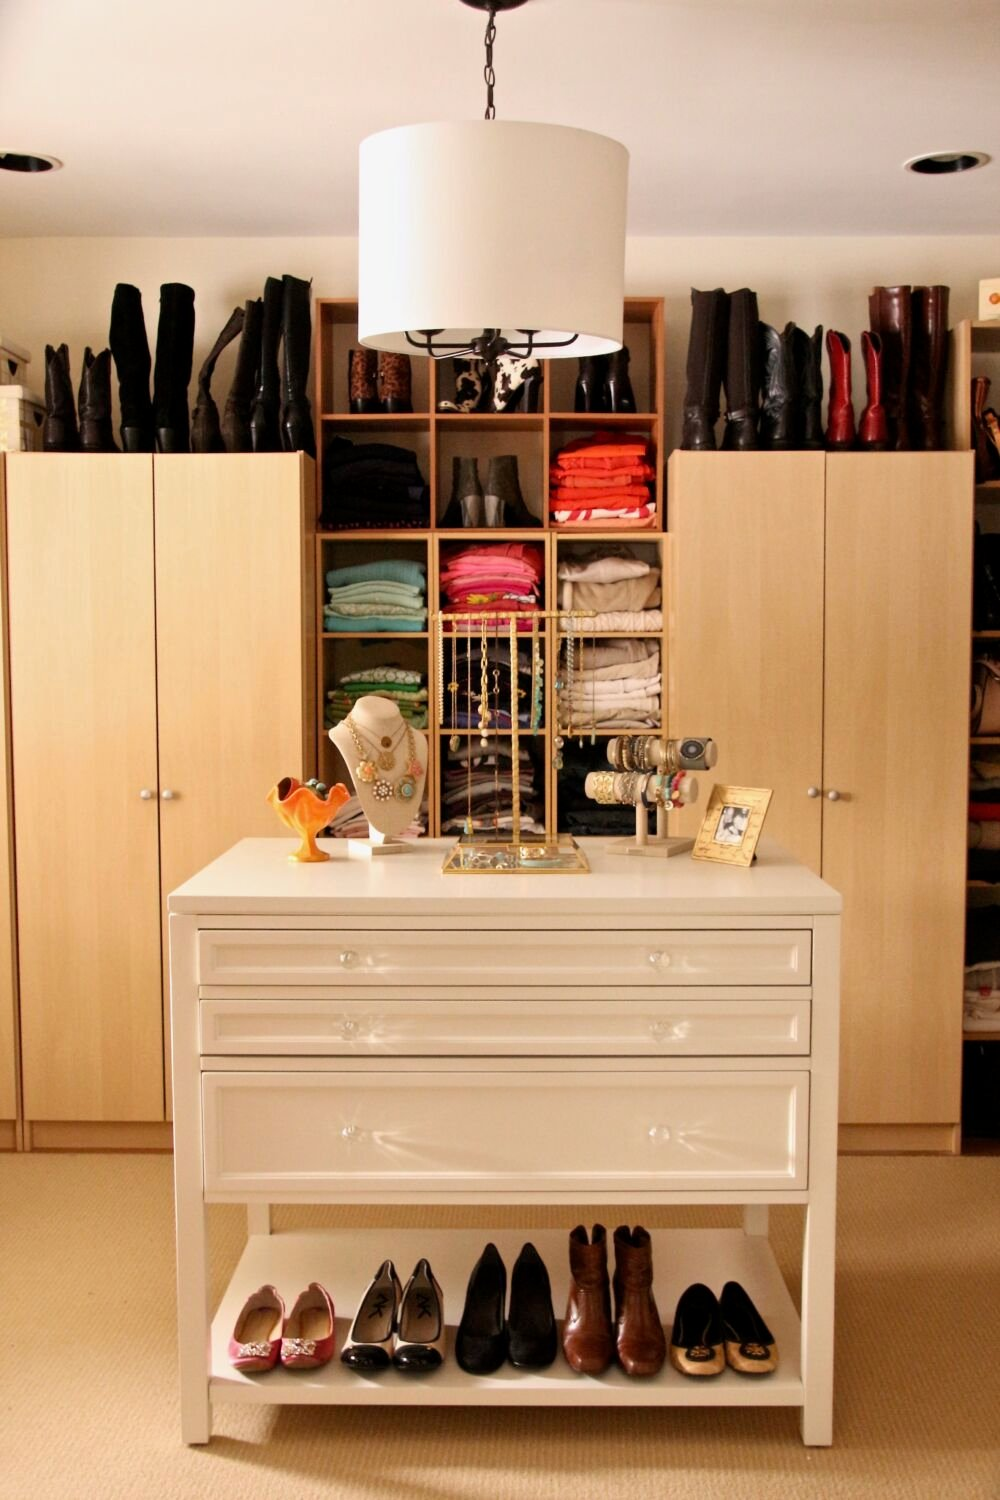 Dream Walk In Closet Organizing Jewelry Clothes Homegoods Home